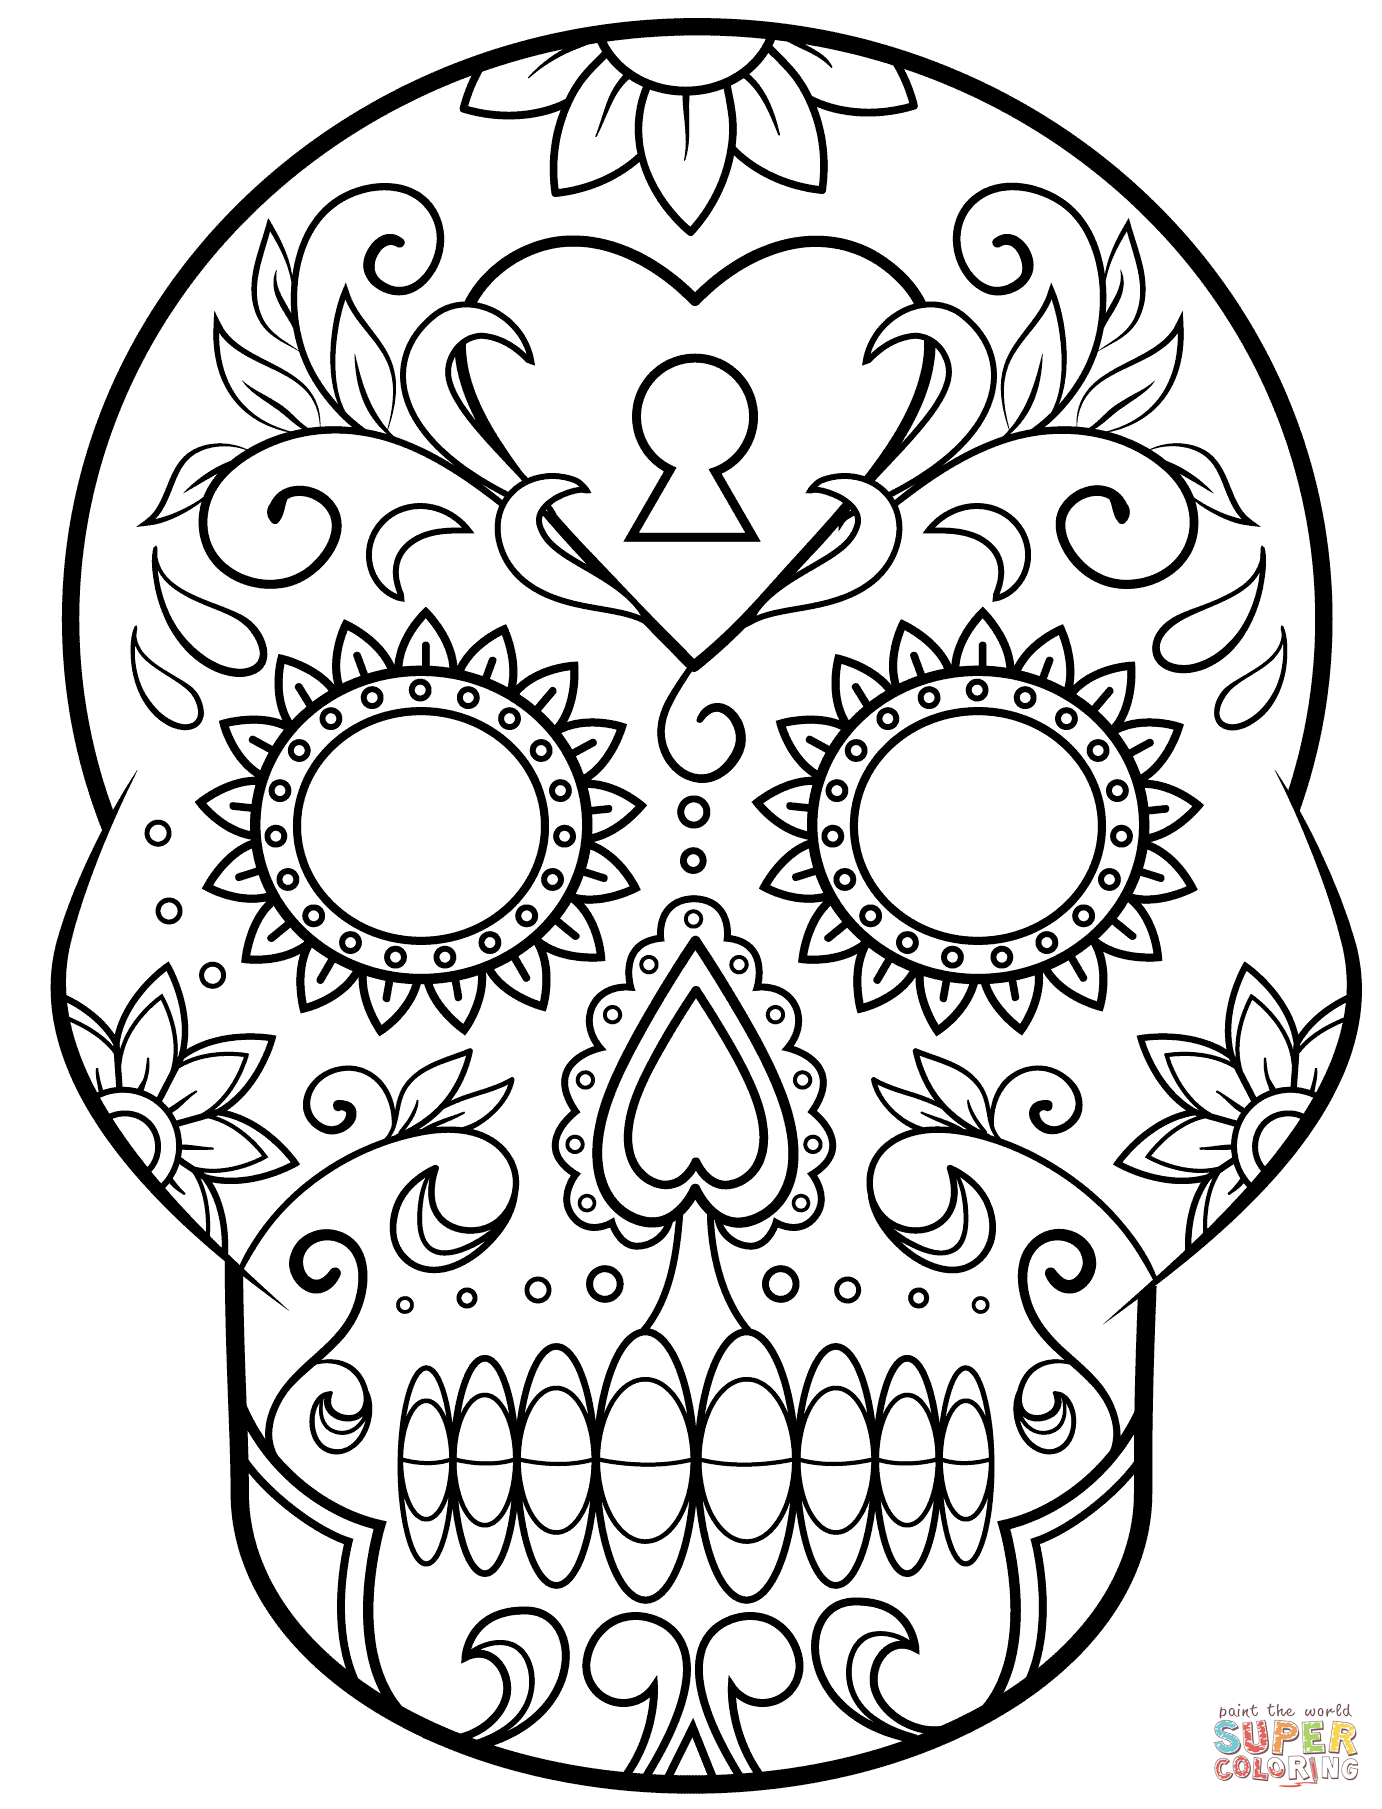 Day Of The Dead Sugar Skull Coloring Page | Free Printable - Free Printable Sugar Skull Day Of The Dead Mask